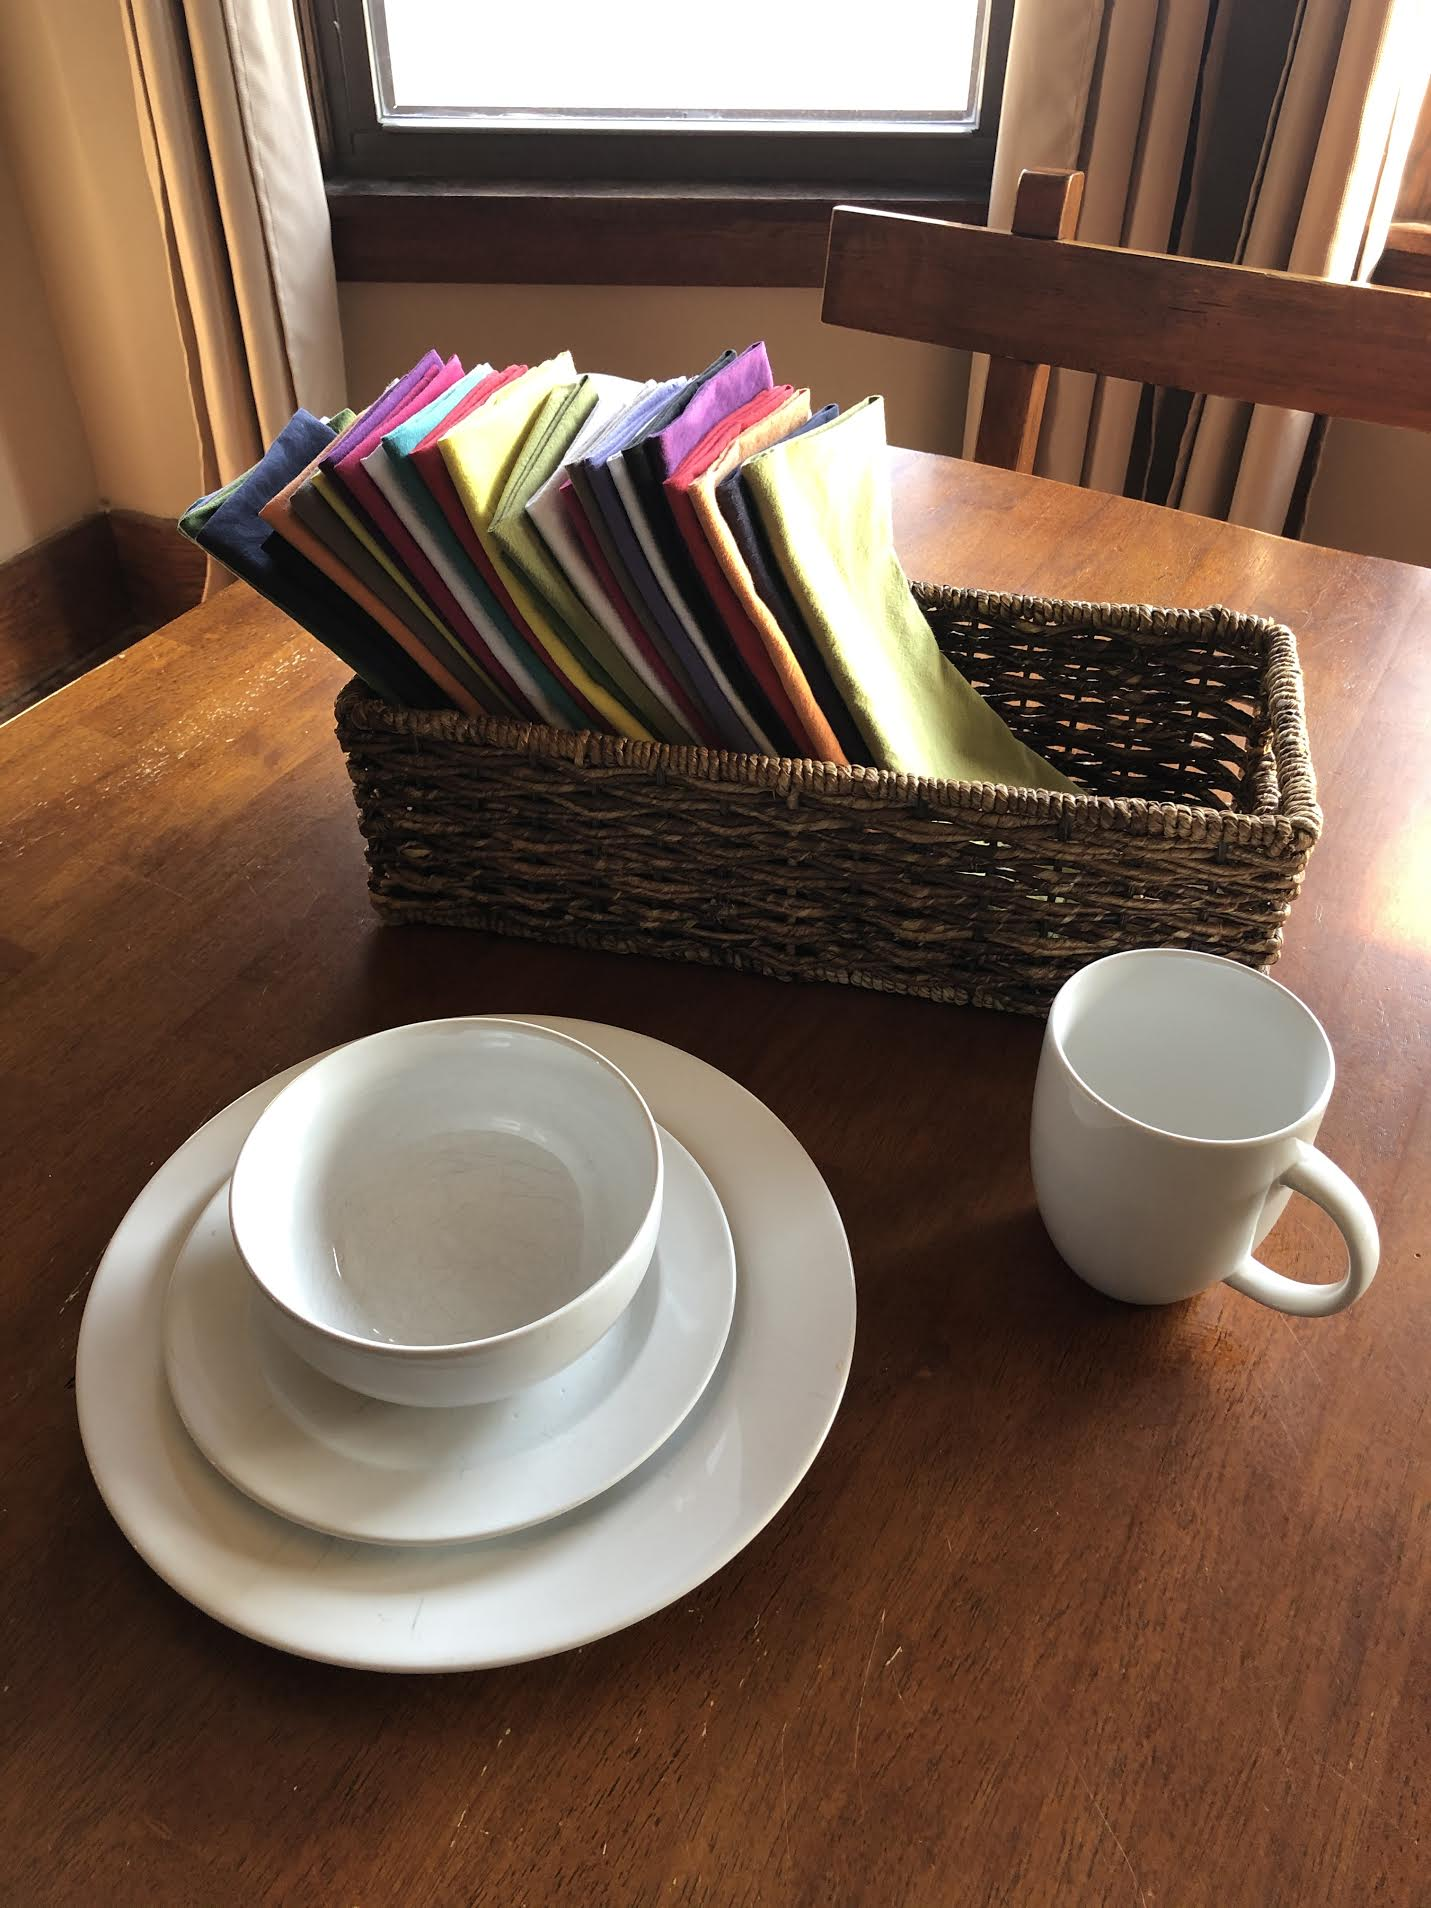 multicolored cloth napkins, white mug, white bowl, and white plate on a wooden kitchen table